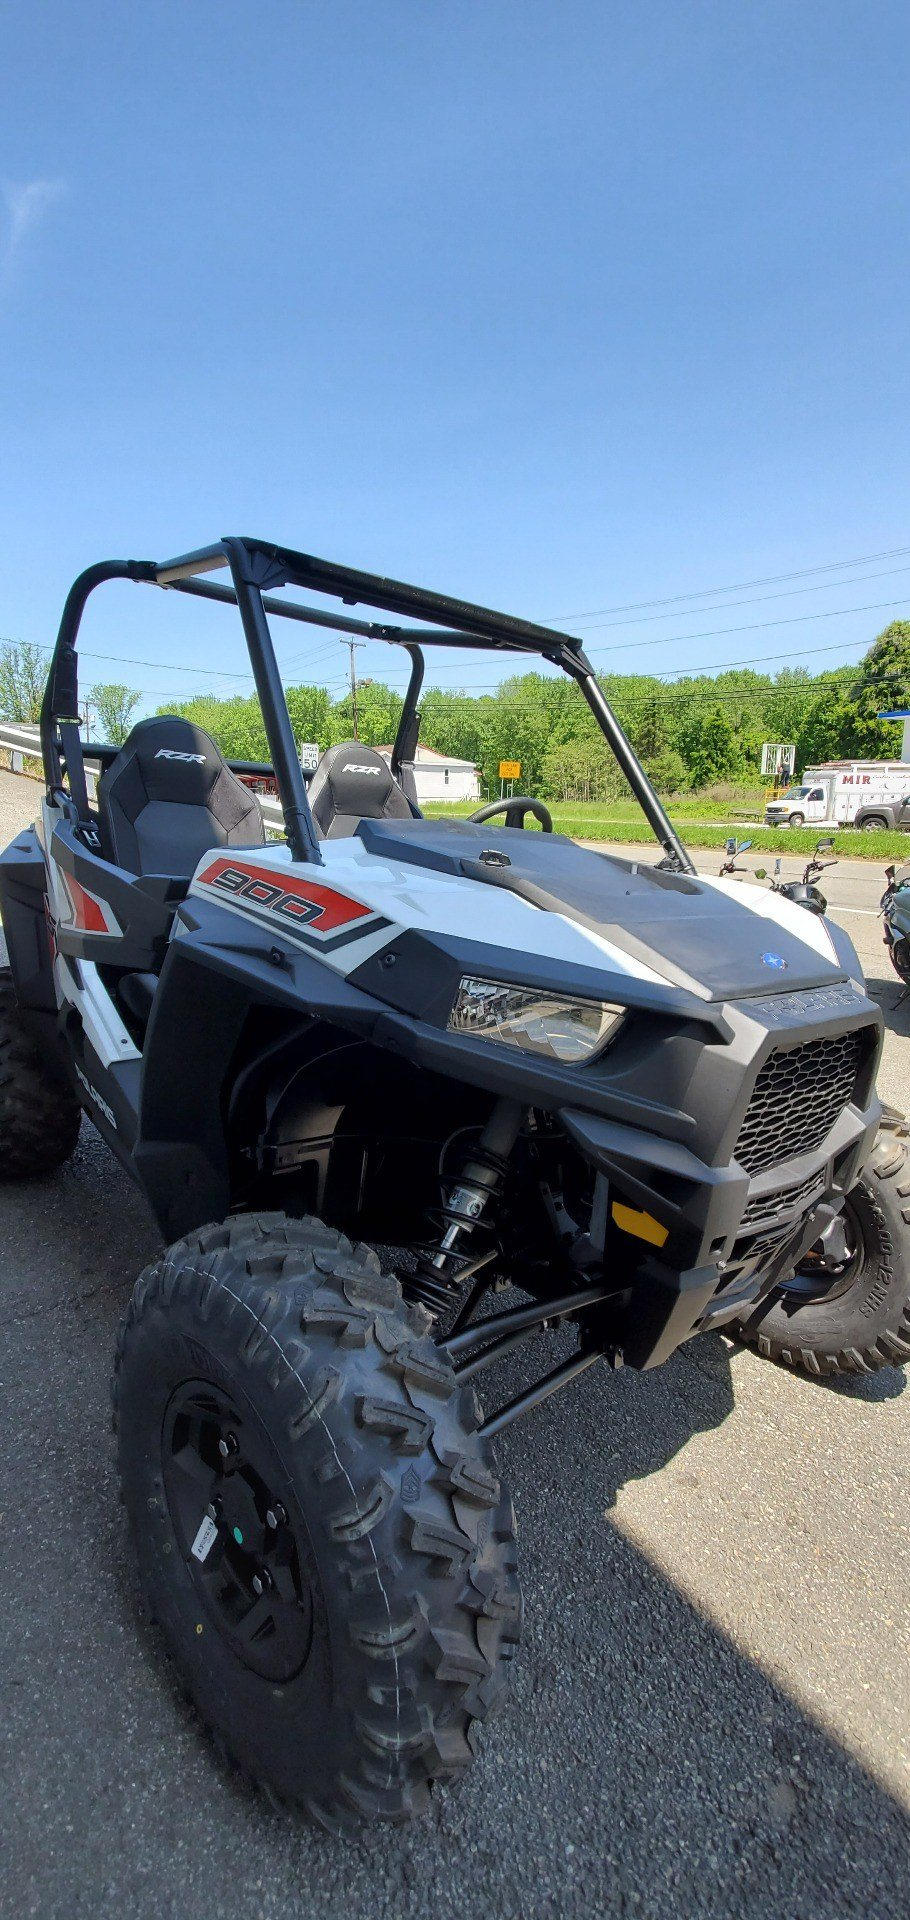 2019 Polaris RZR S 900 in Ledgewood, New Jersey - Photo 8